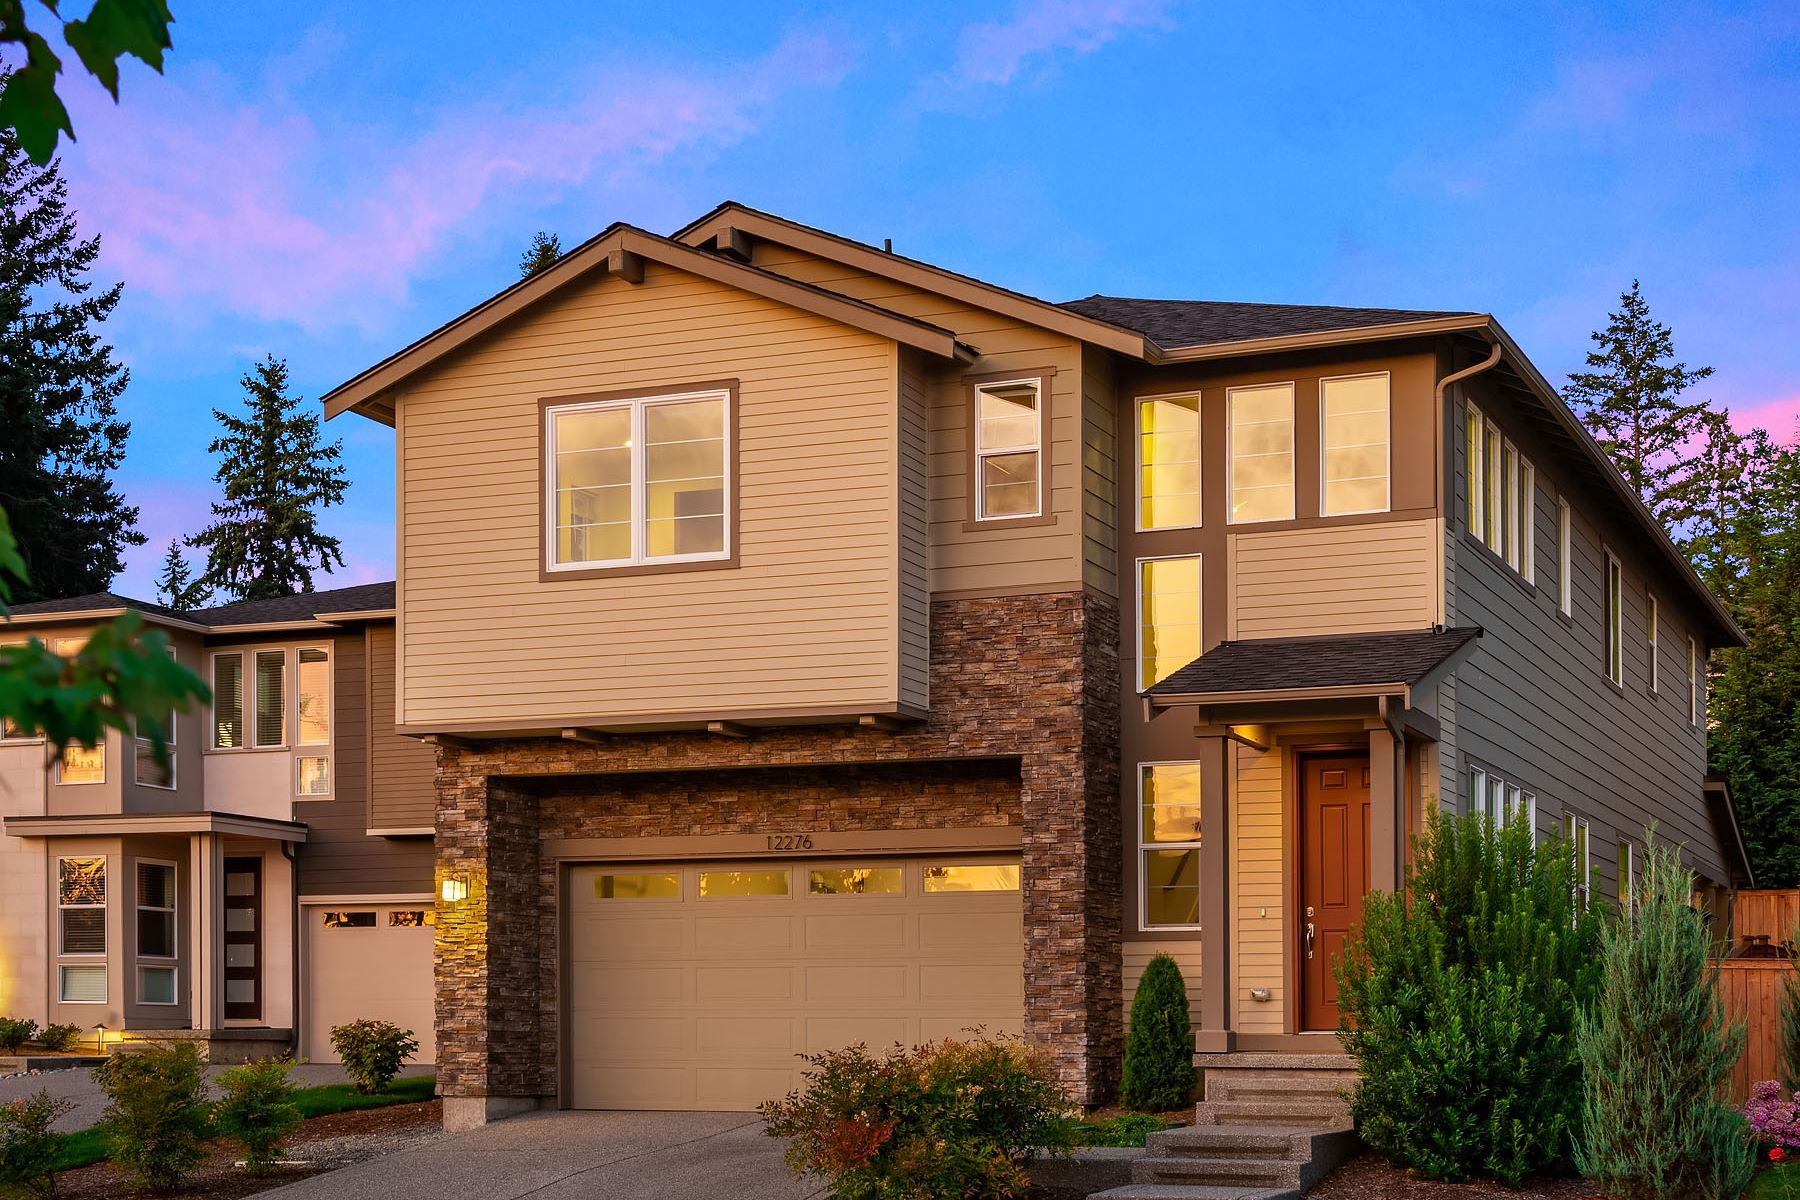 Single Family Homes for Sale at Sophisticated Redmond Elegance 12276 167th Place NE Redmond, Washington 98052 United States